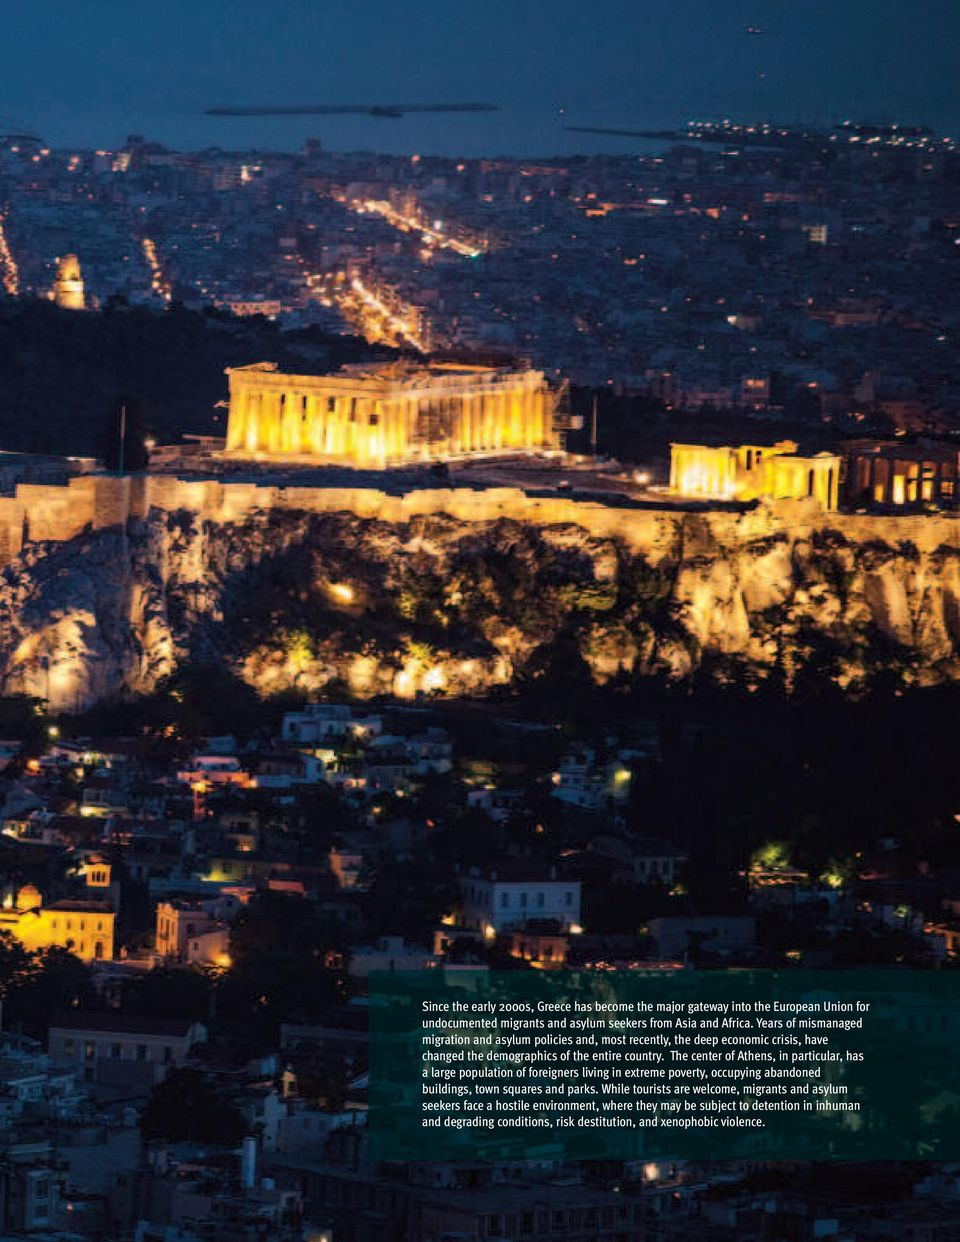 The center of Athens, in particular, has a large population of foreigners living in extreme poverty, occupying abandoned buildings, town squares and parks.